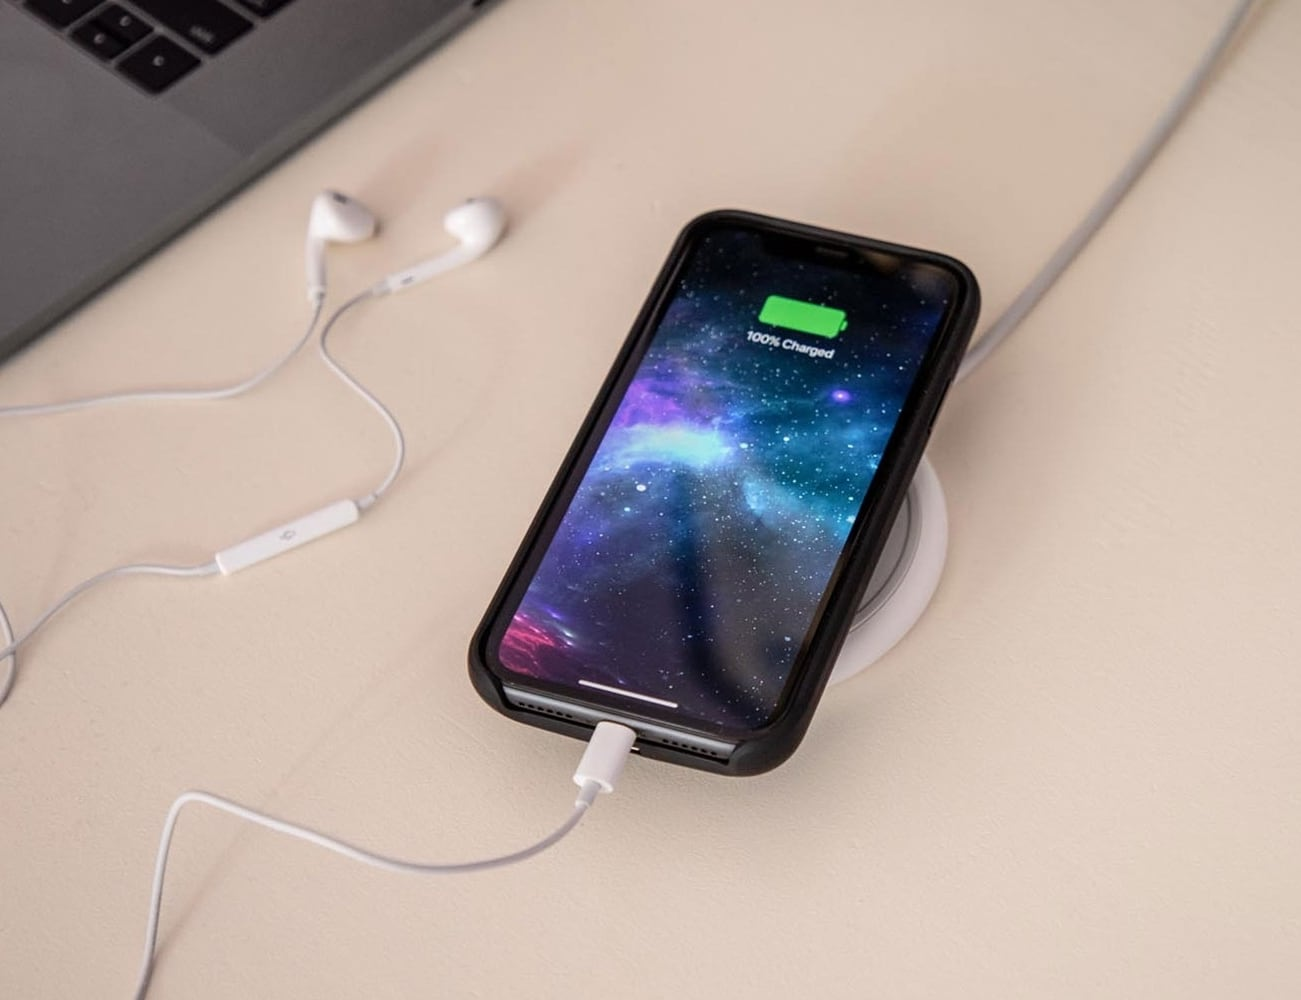 mophie juice pack access iPhone Xs Max Battery Case gives you 2,200 mAh of extra power